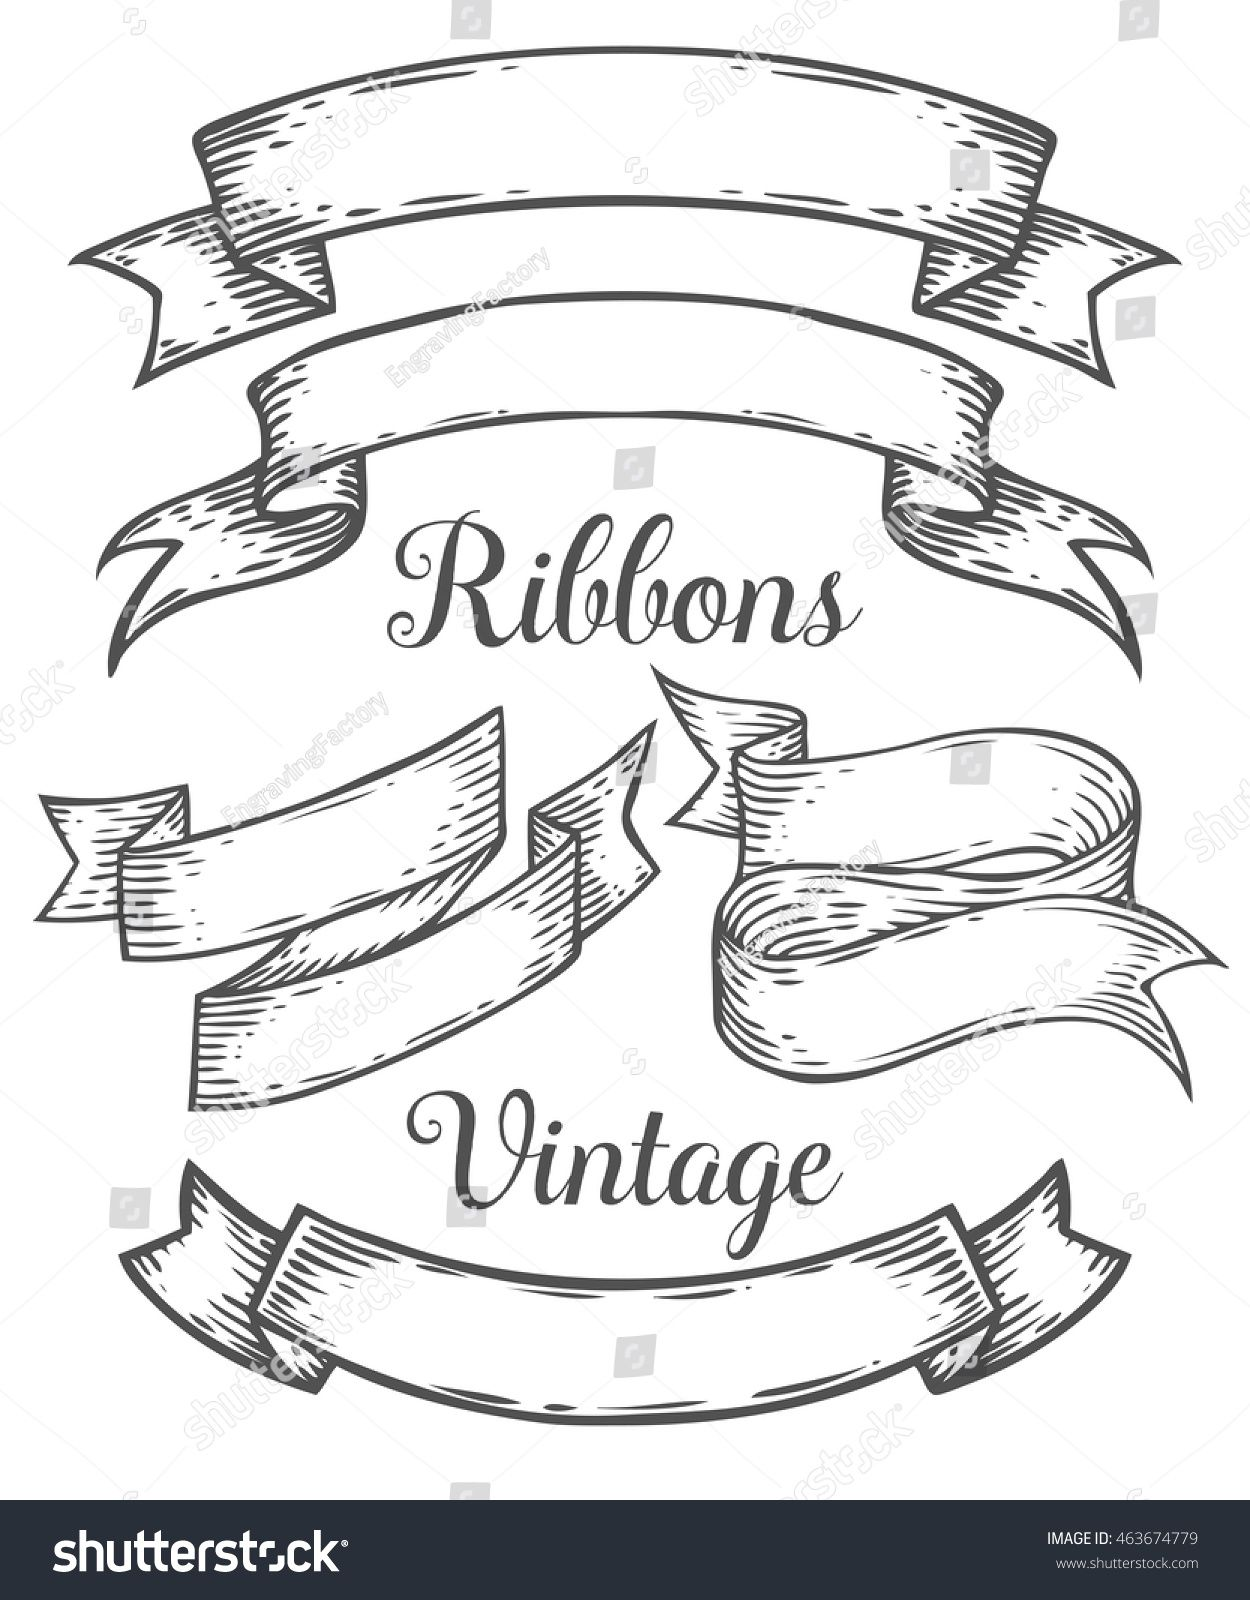 Ribbon Retro Vintage Hand Drawn Illustration Vector Set Sketch Banners Old School Style For Decoration Scra Hand Lettering Art Banner Drawing Tattoo Banner